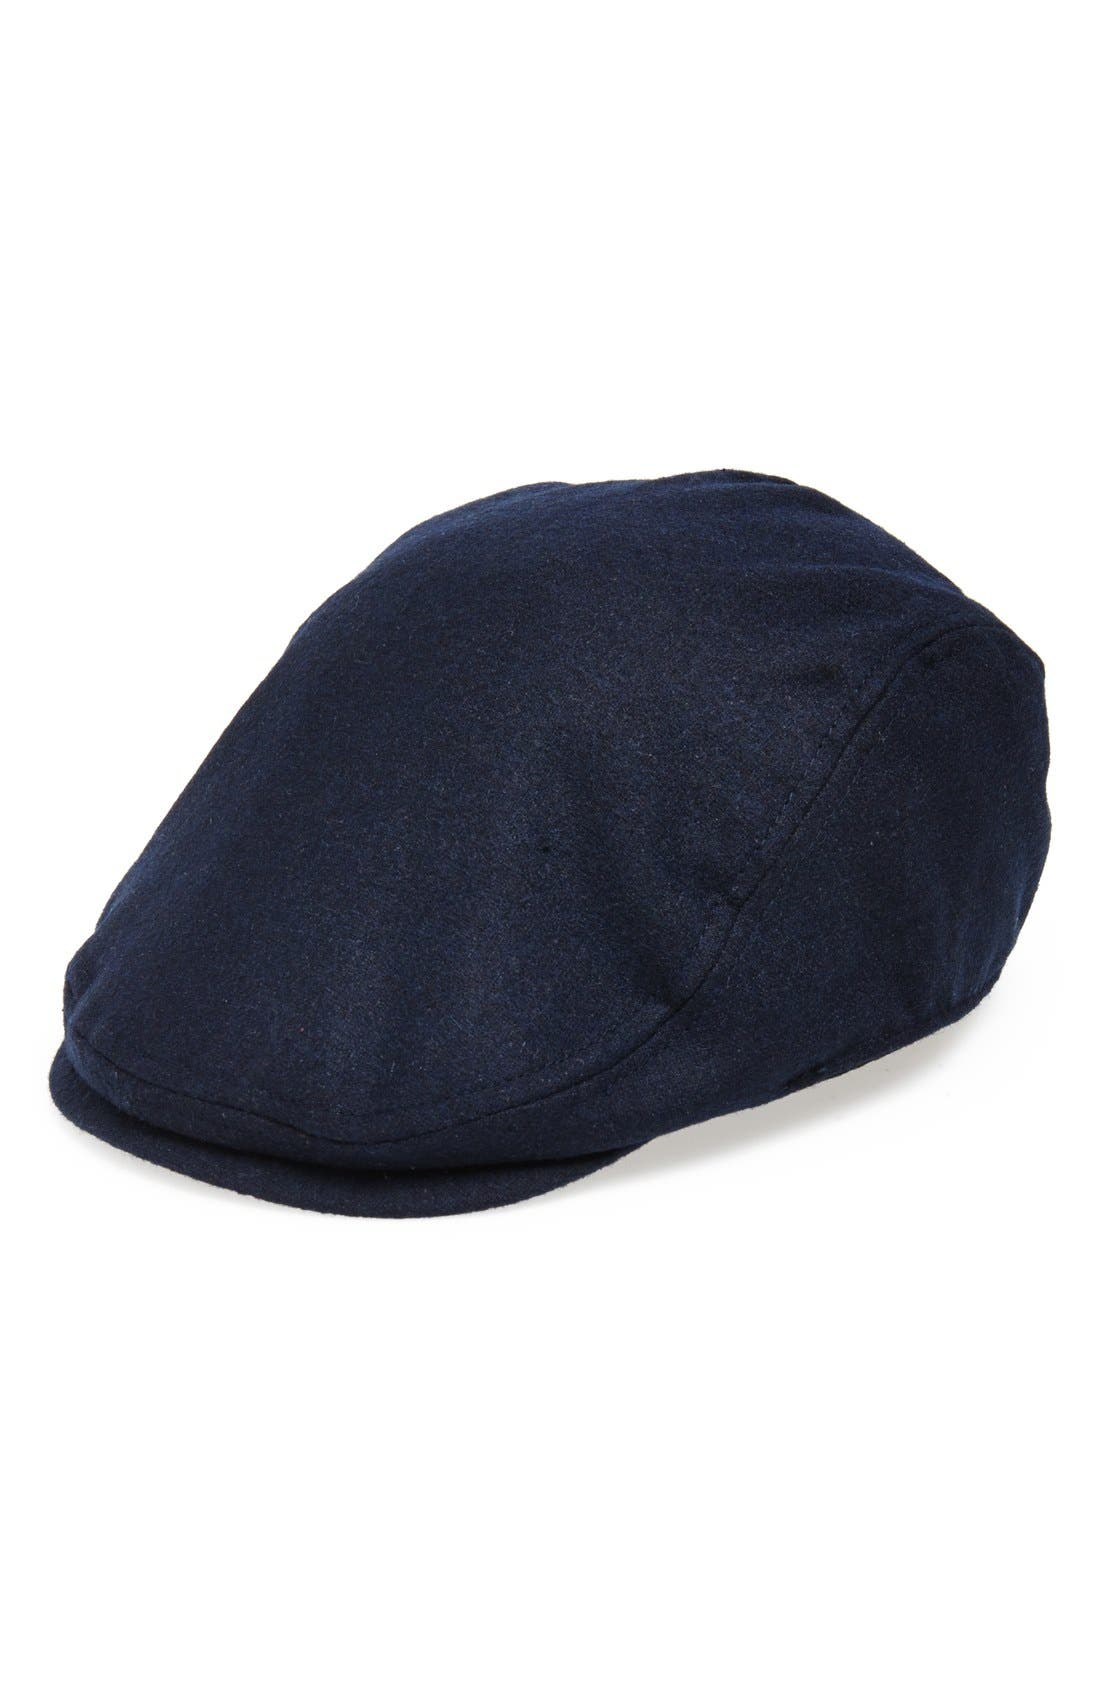 Glory Hats by Goorin 'Mikey' Driving Cap,                         Main,                         color, Navy